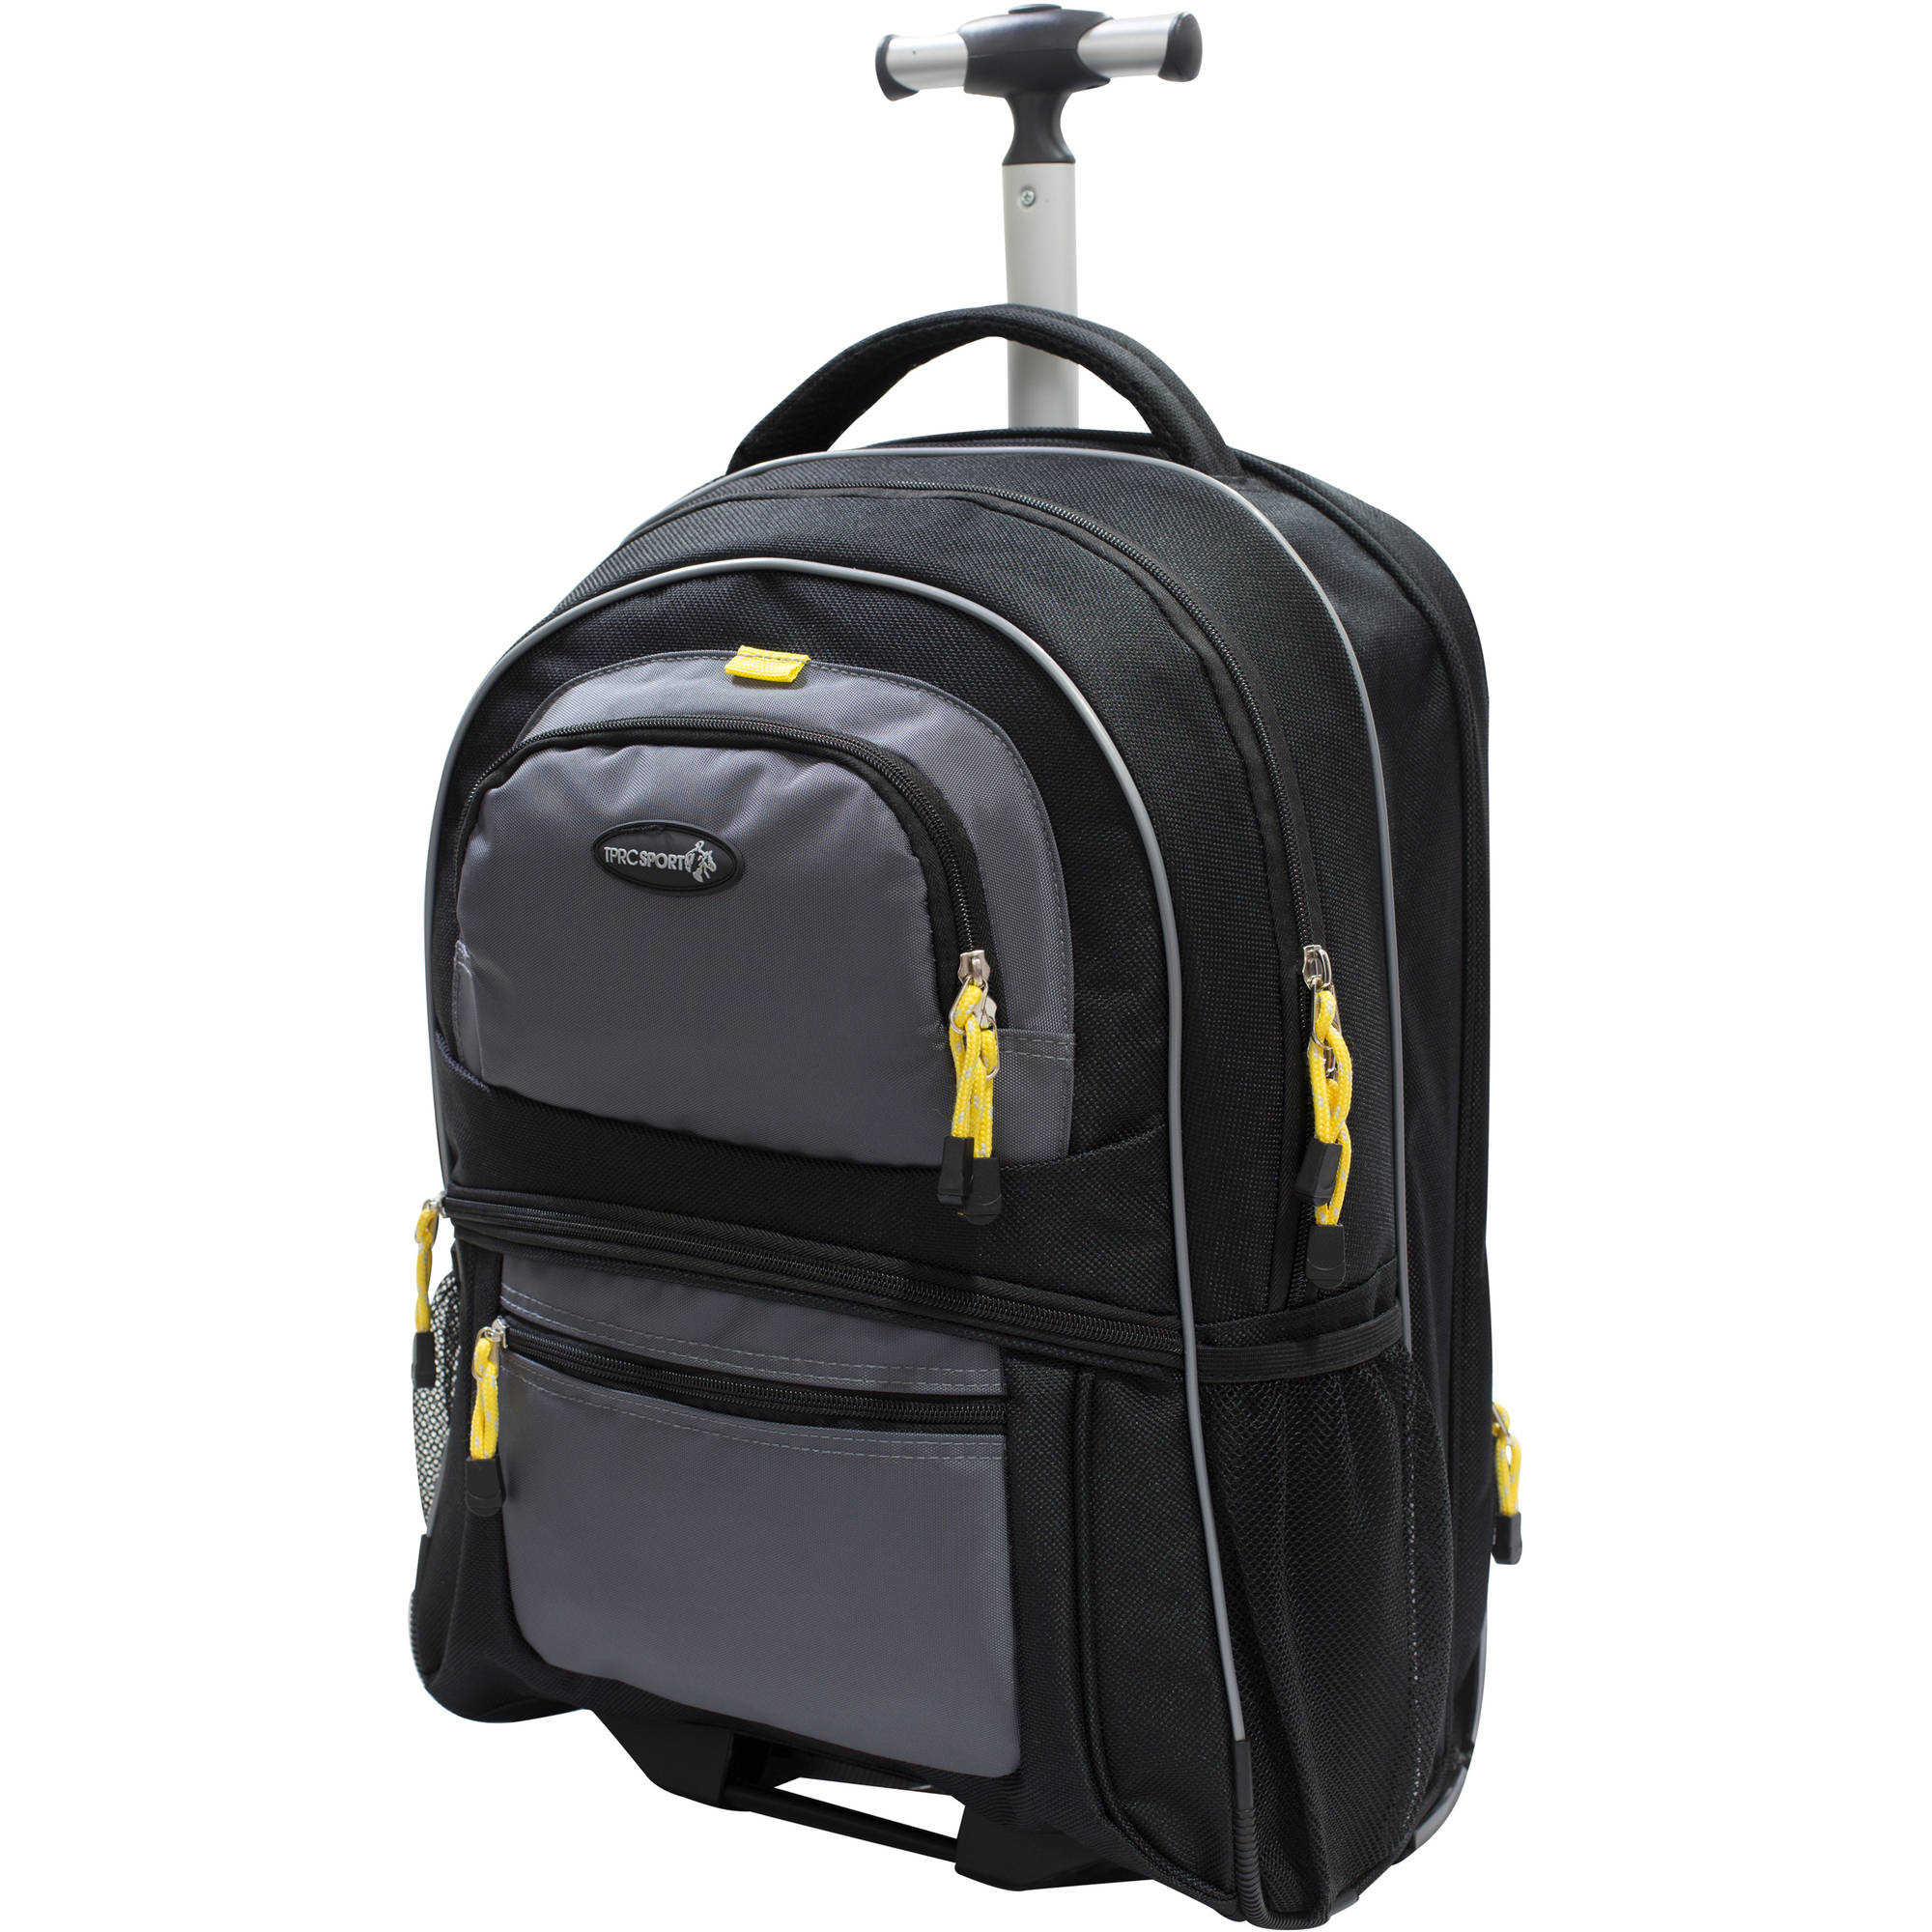 "TPRC 19"" Rolling Backpack Black by Travelers Club Luggage"